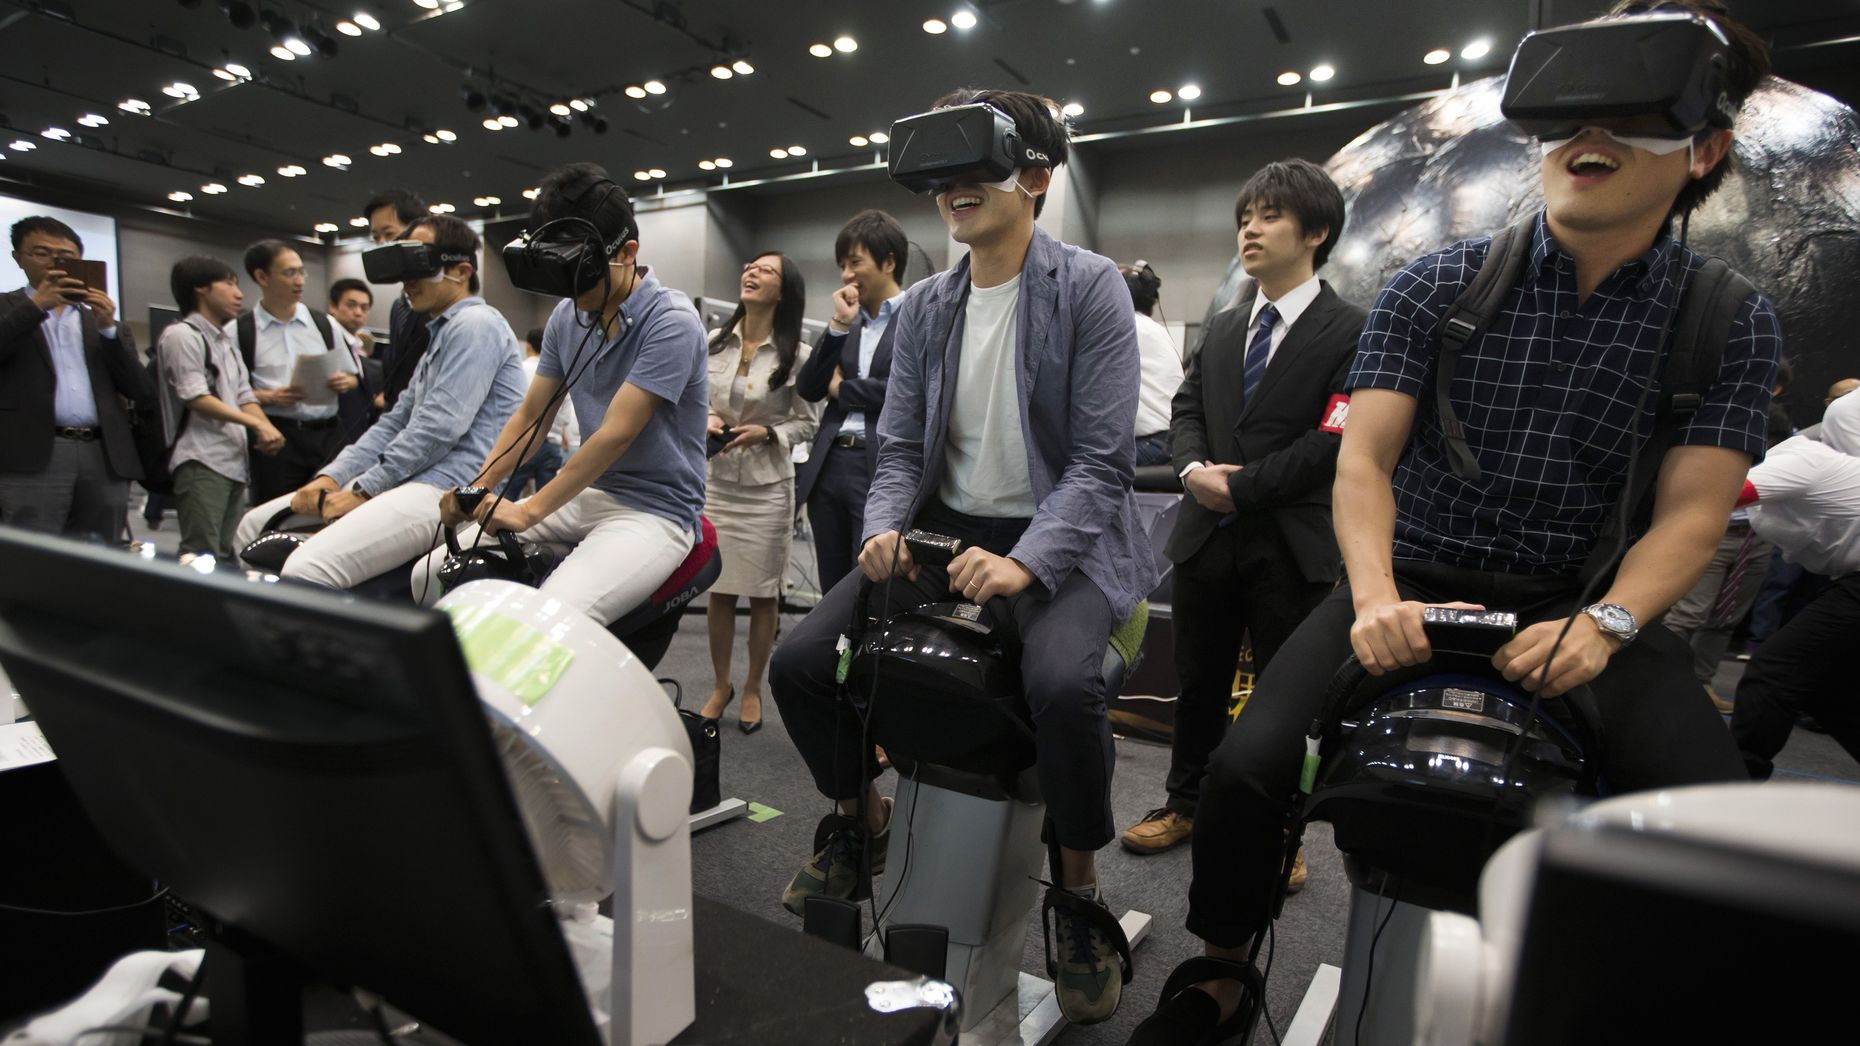 People trying out Oculus Rift headsets at a demonstration in Tokyo last month. Photo by Bloomberg.